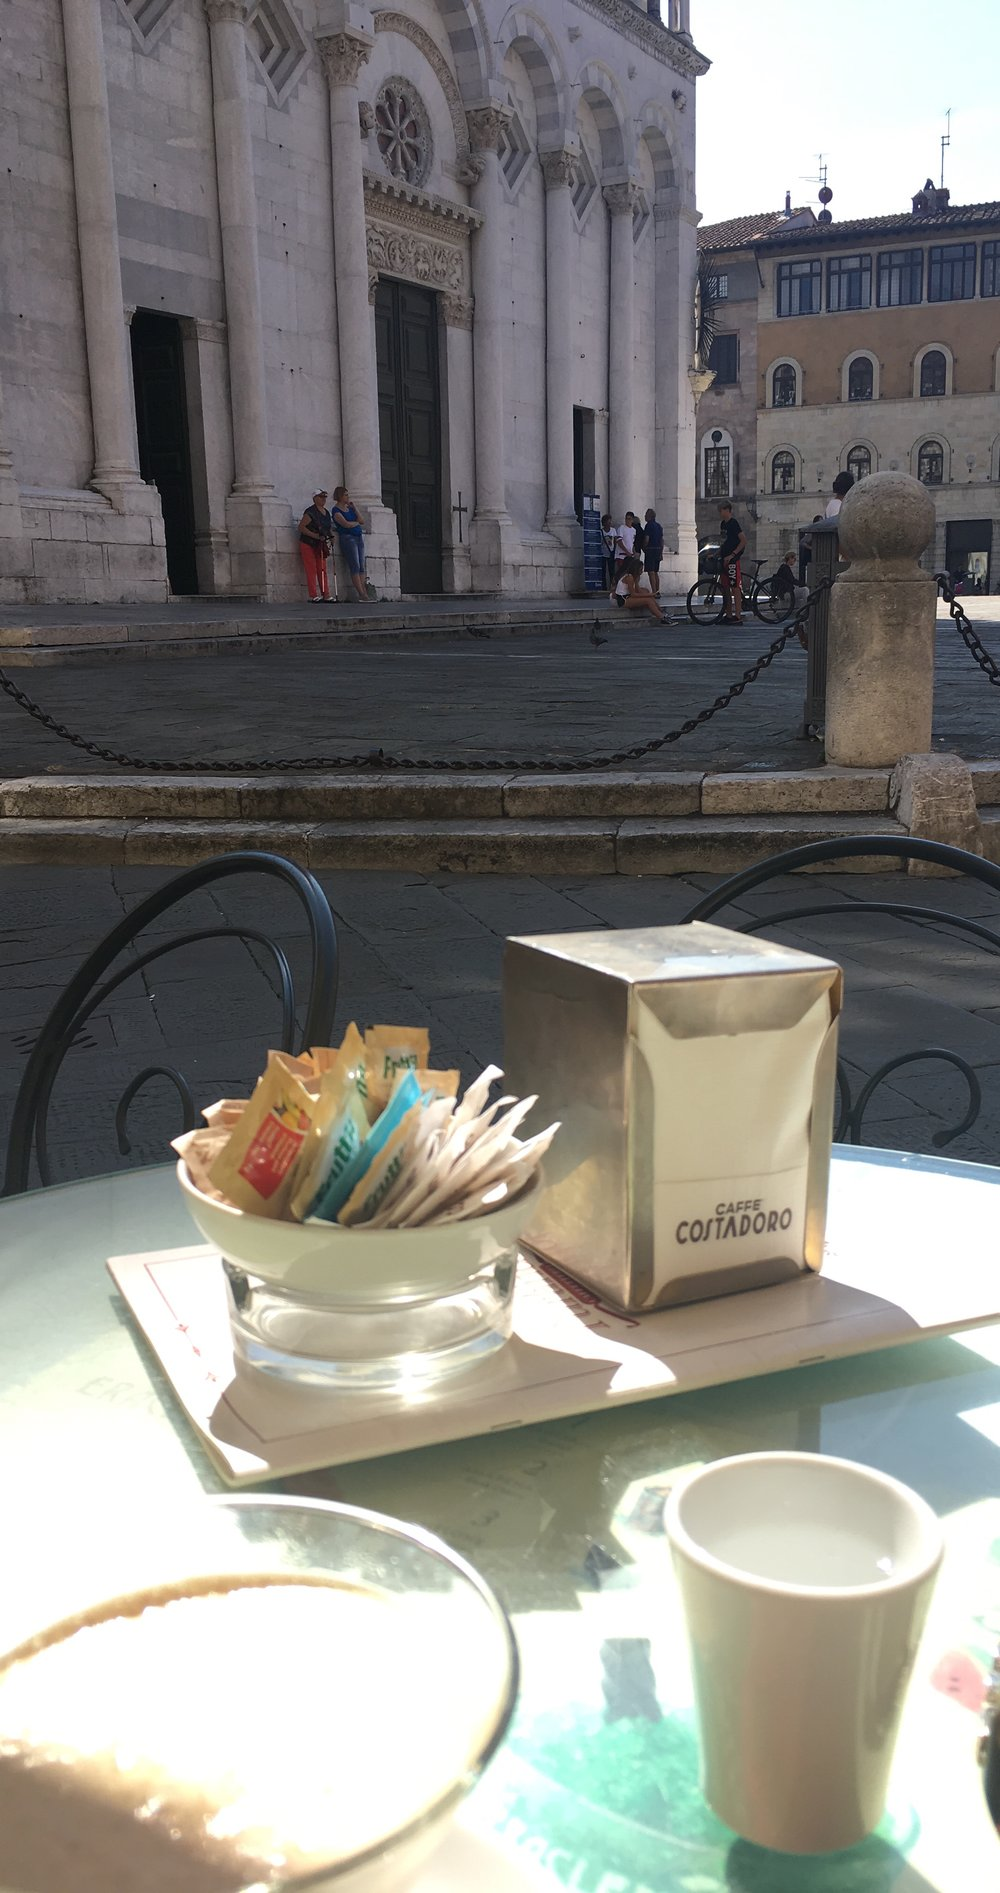 Sipping iced coffee on Piazza San Michele, Lucca